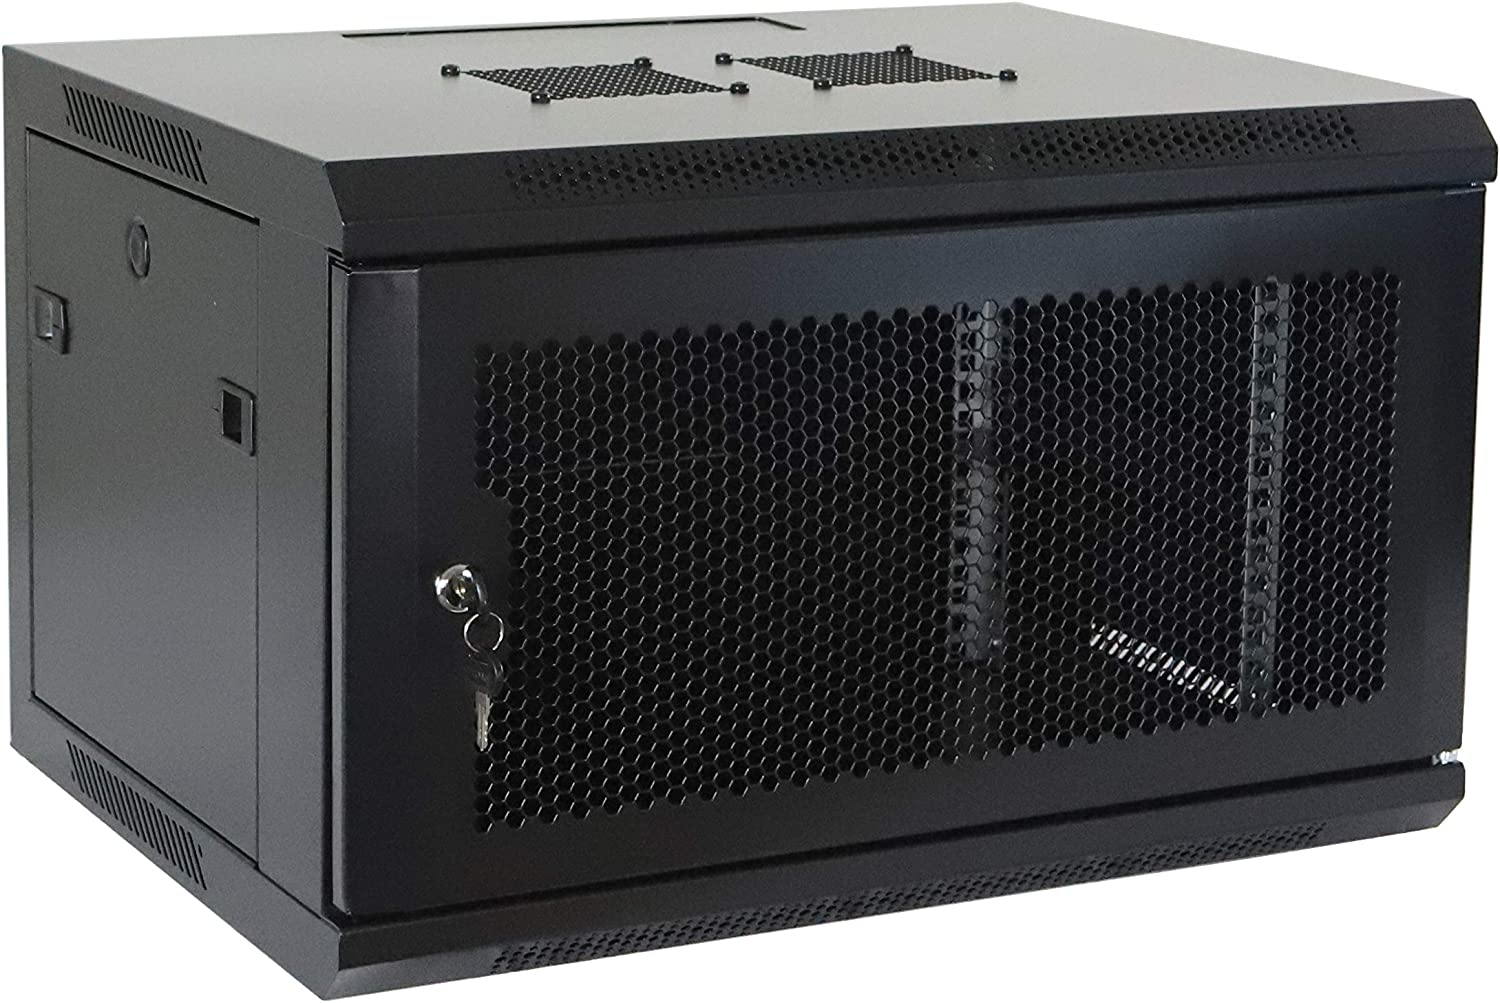 6U Professional Wall Mount Network Server Cabinet Enclosure 19-Inch Server Network Rack with Vented Door 16-Inches Deep Black (Fully Assembled)